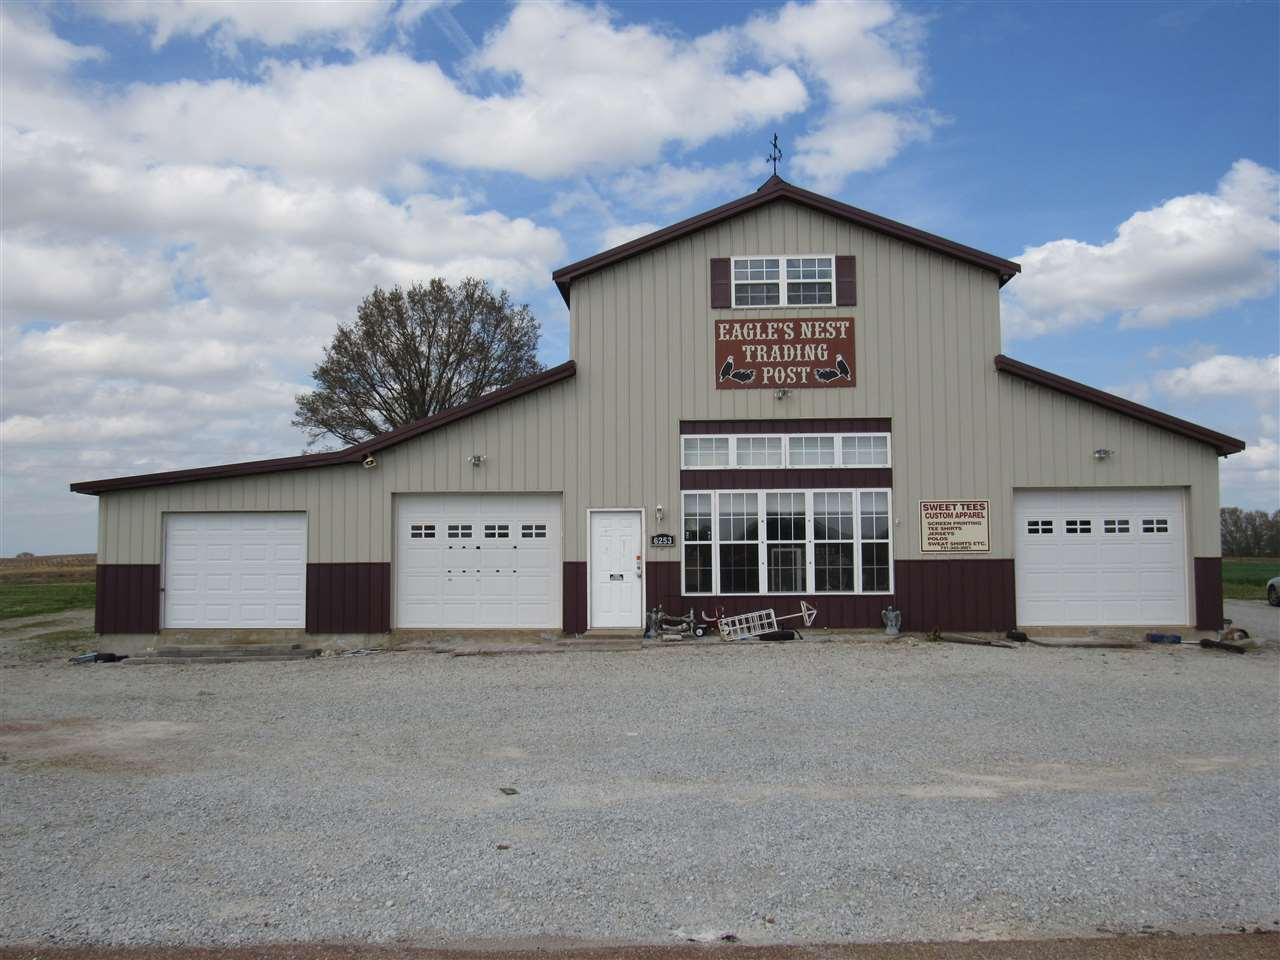 6253 Highway 412,Bells,Tennessee 38006-3909,Commercial/industrial,6253 Highway 412,182327